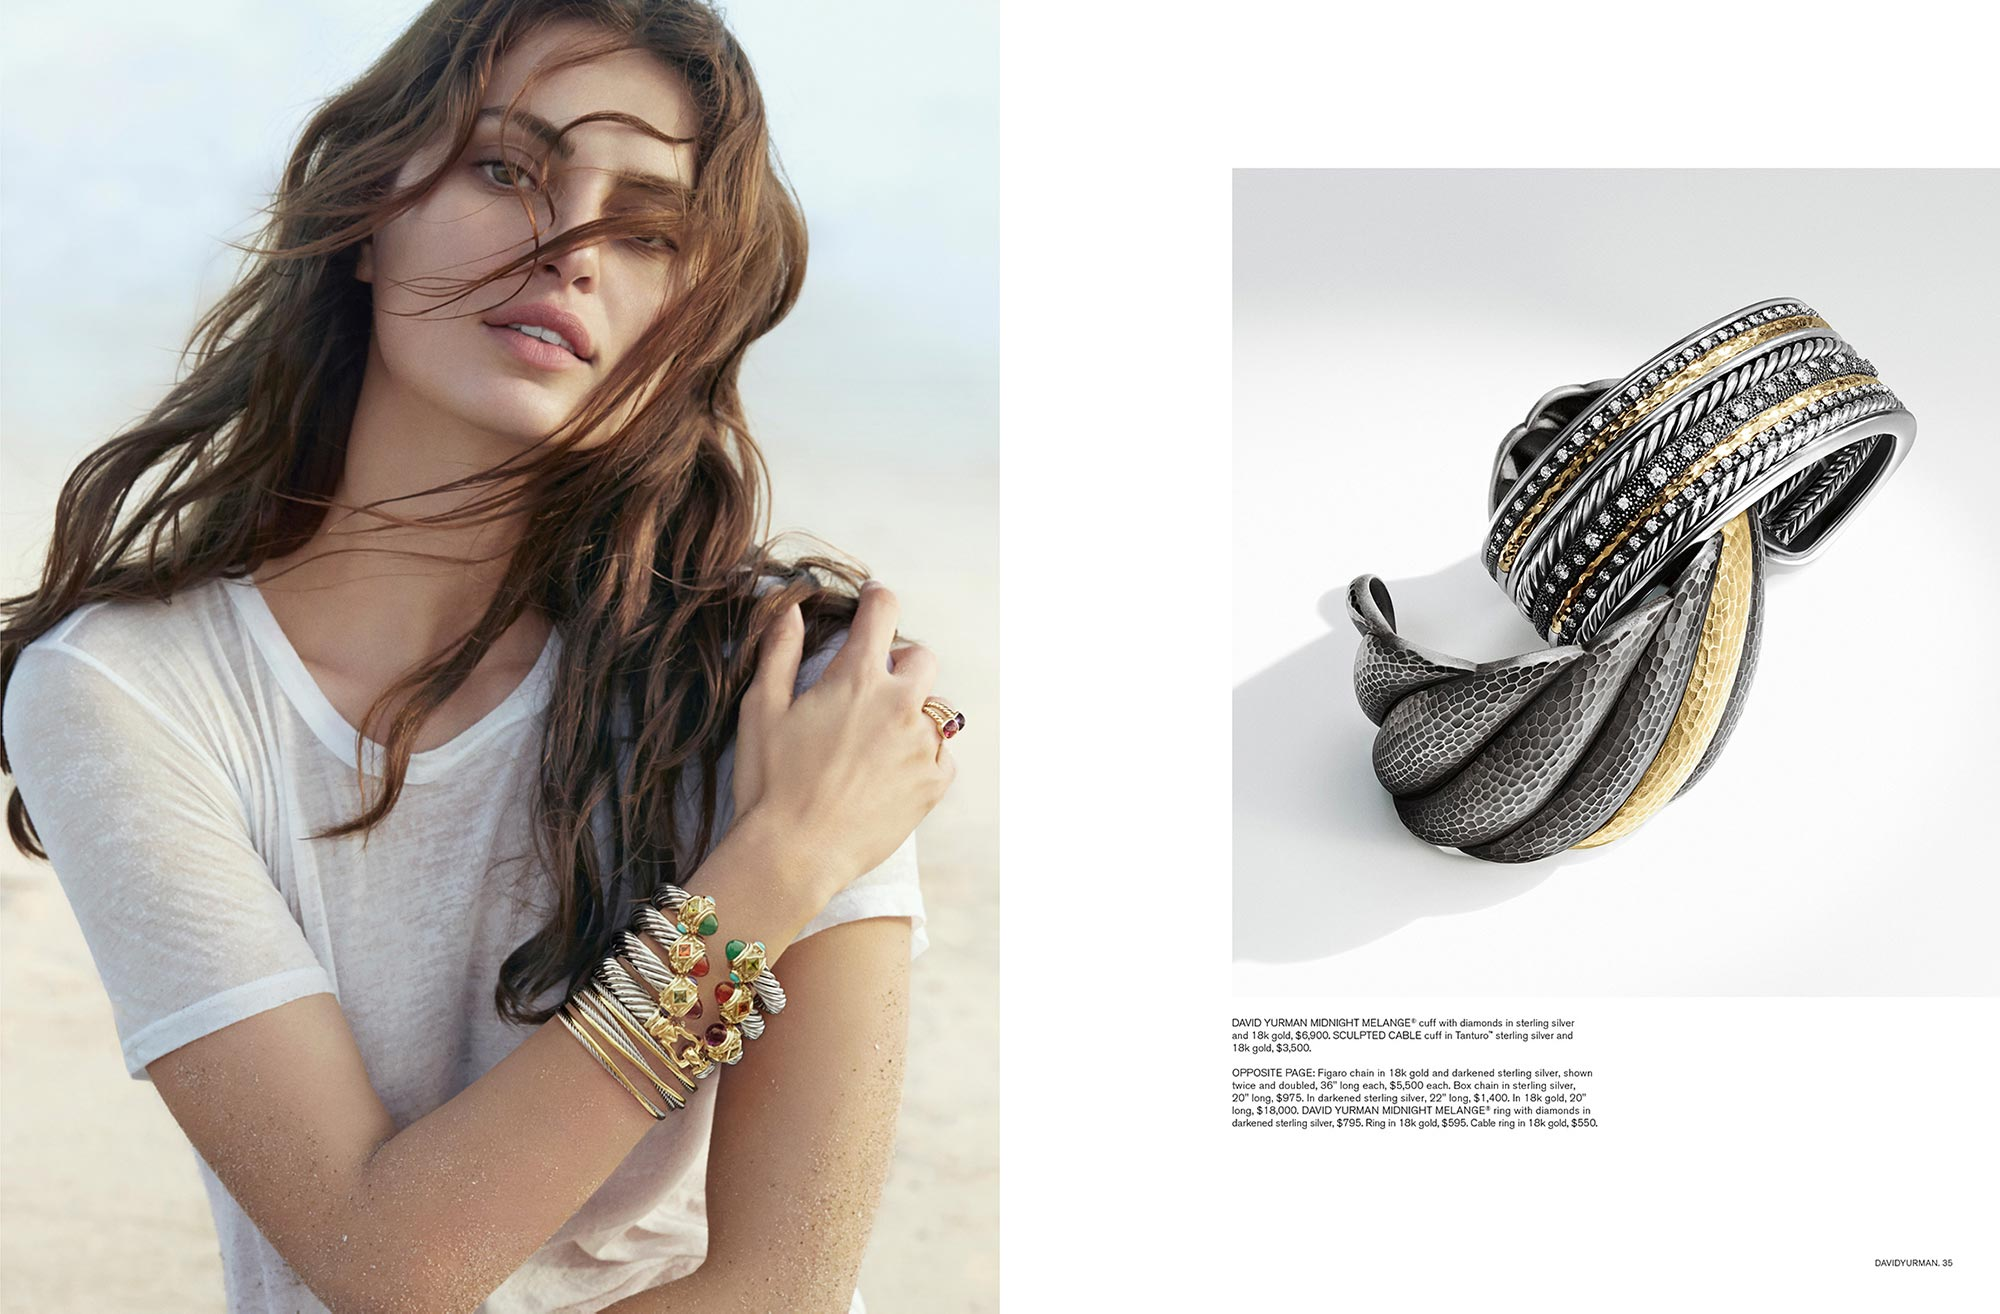 Art Direction and Graphic Design for David Yurman Featuring Catrinel Menghia